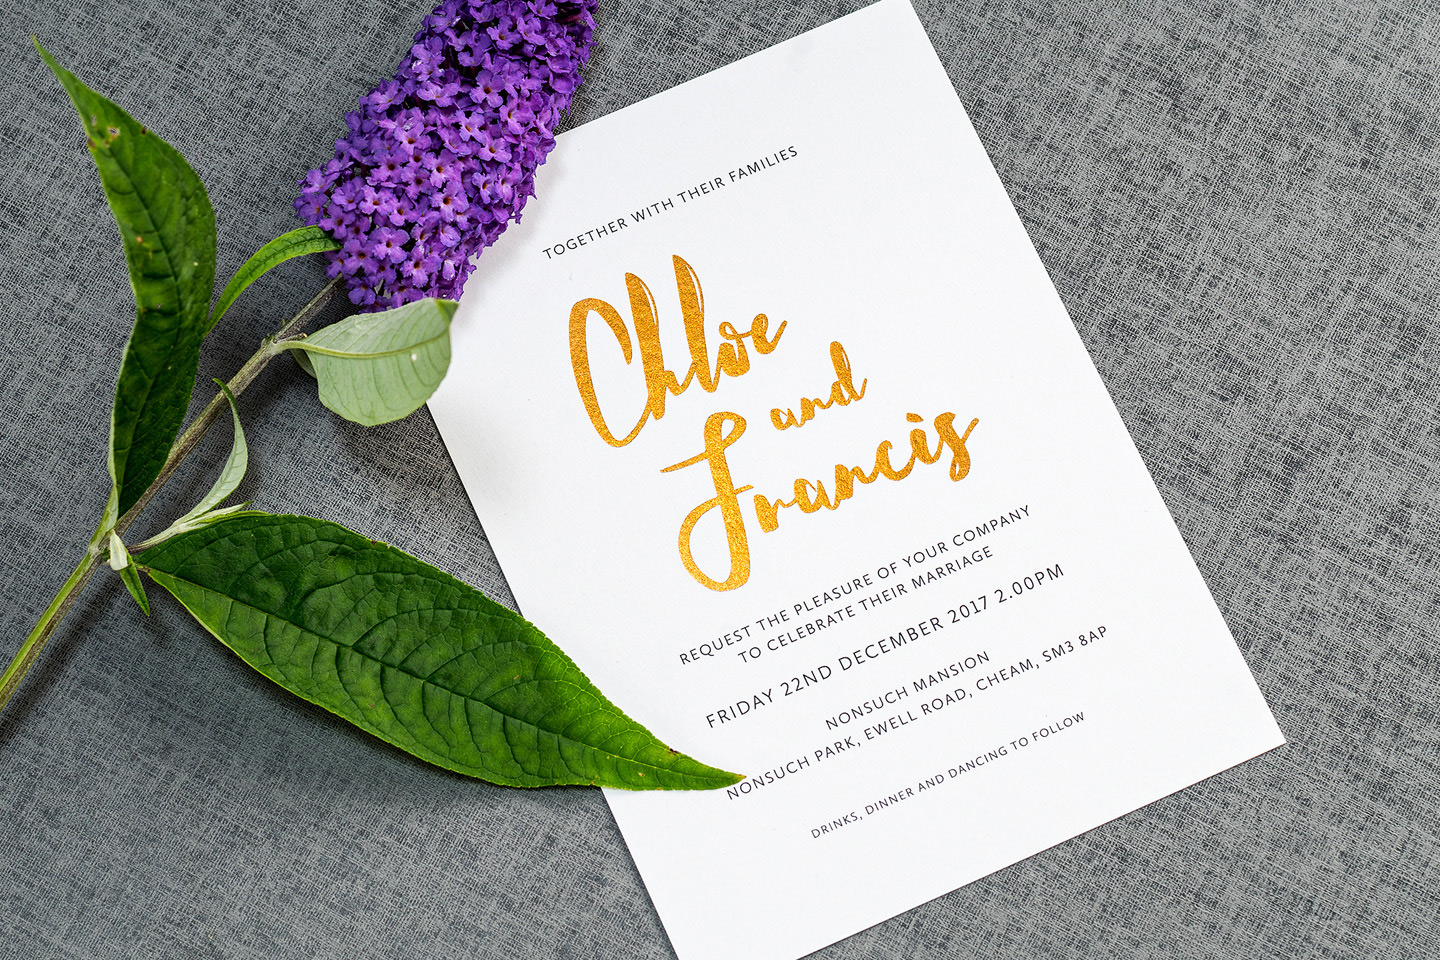 Wedding Invitation Wording: How To Get It Right